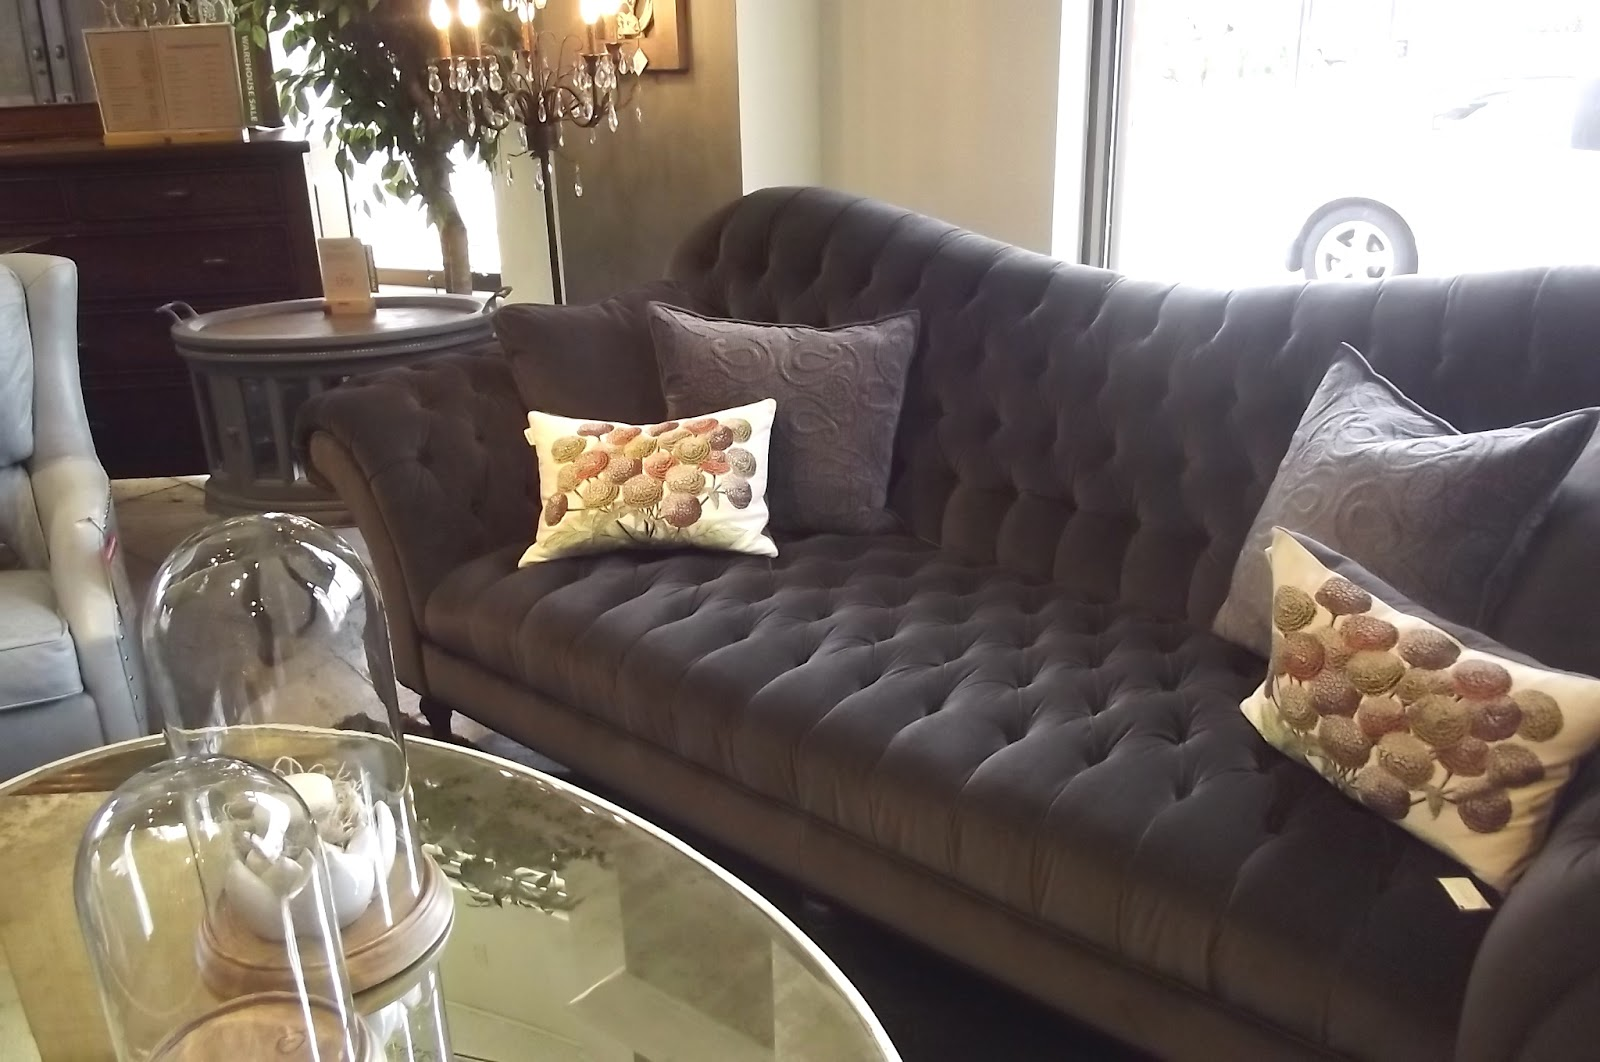 Velvet Grey Tufted Sofa Como Hacer Cama Para Perros Red River Interiors What 39s Inspiring Me